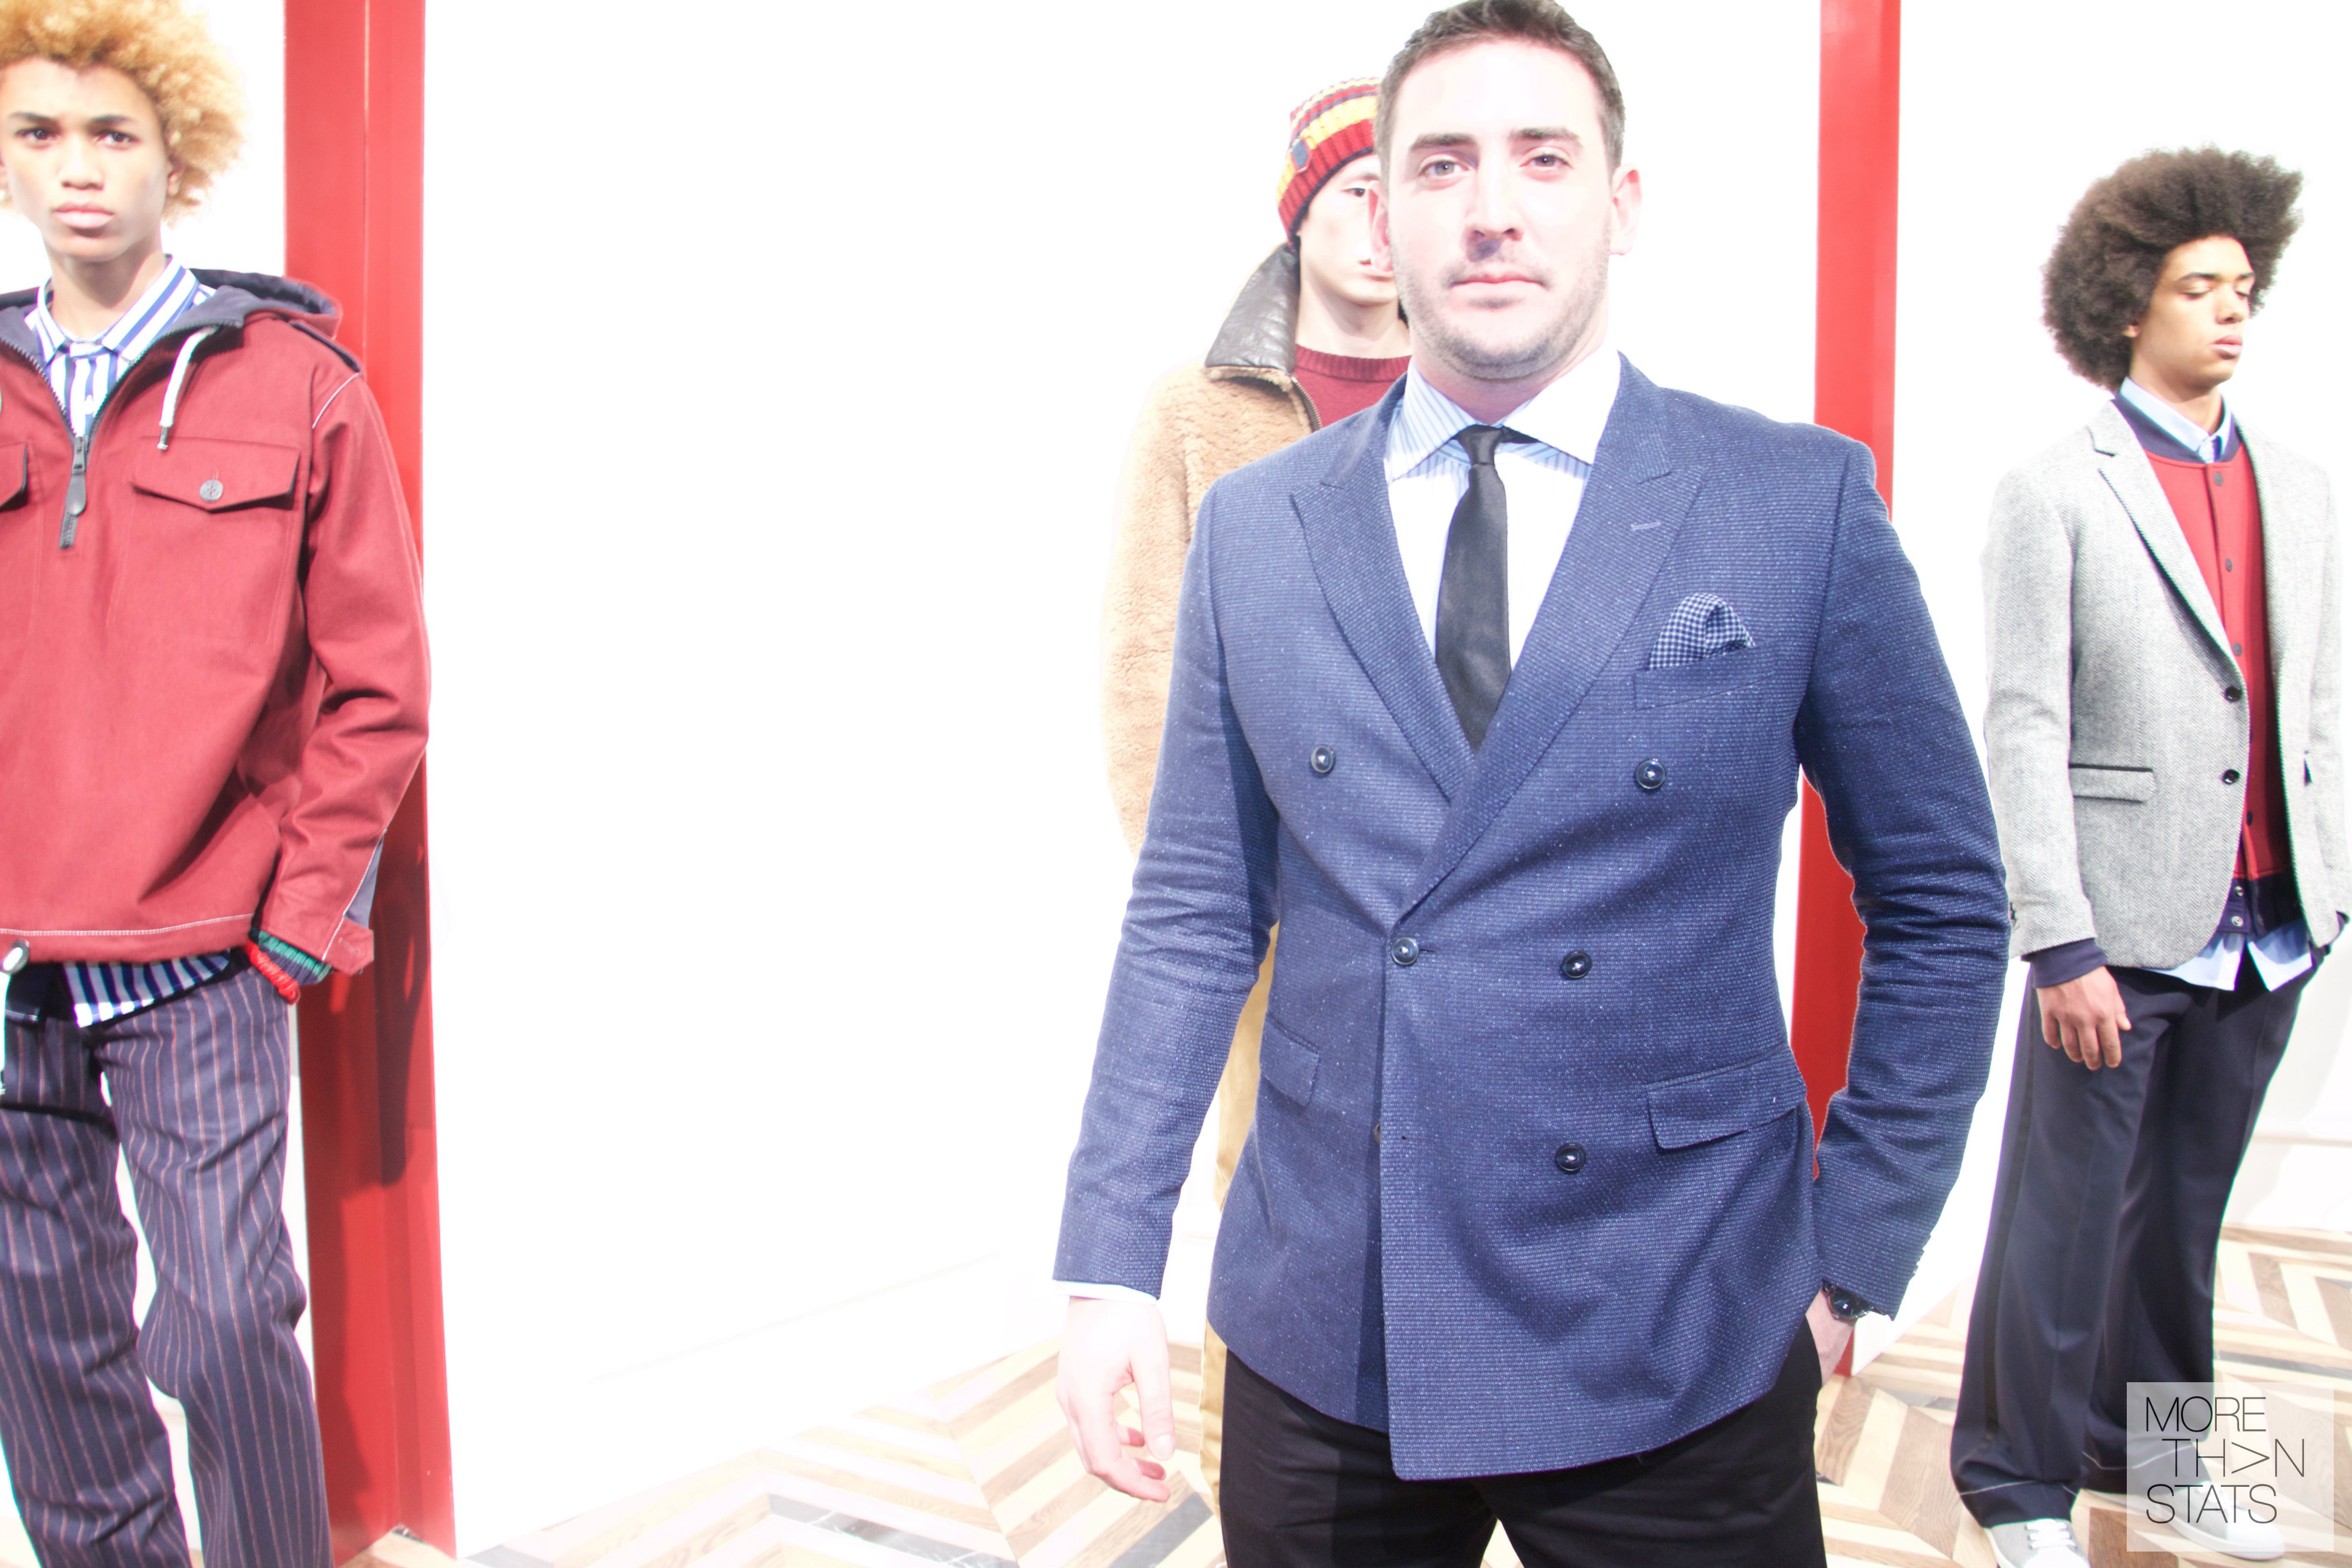 Matt-Harvey-NYFWM-FW16-Tommy-Hilfiger